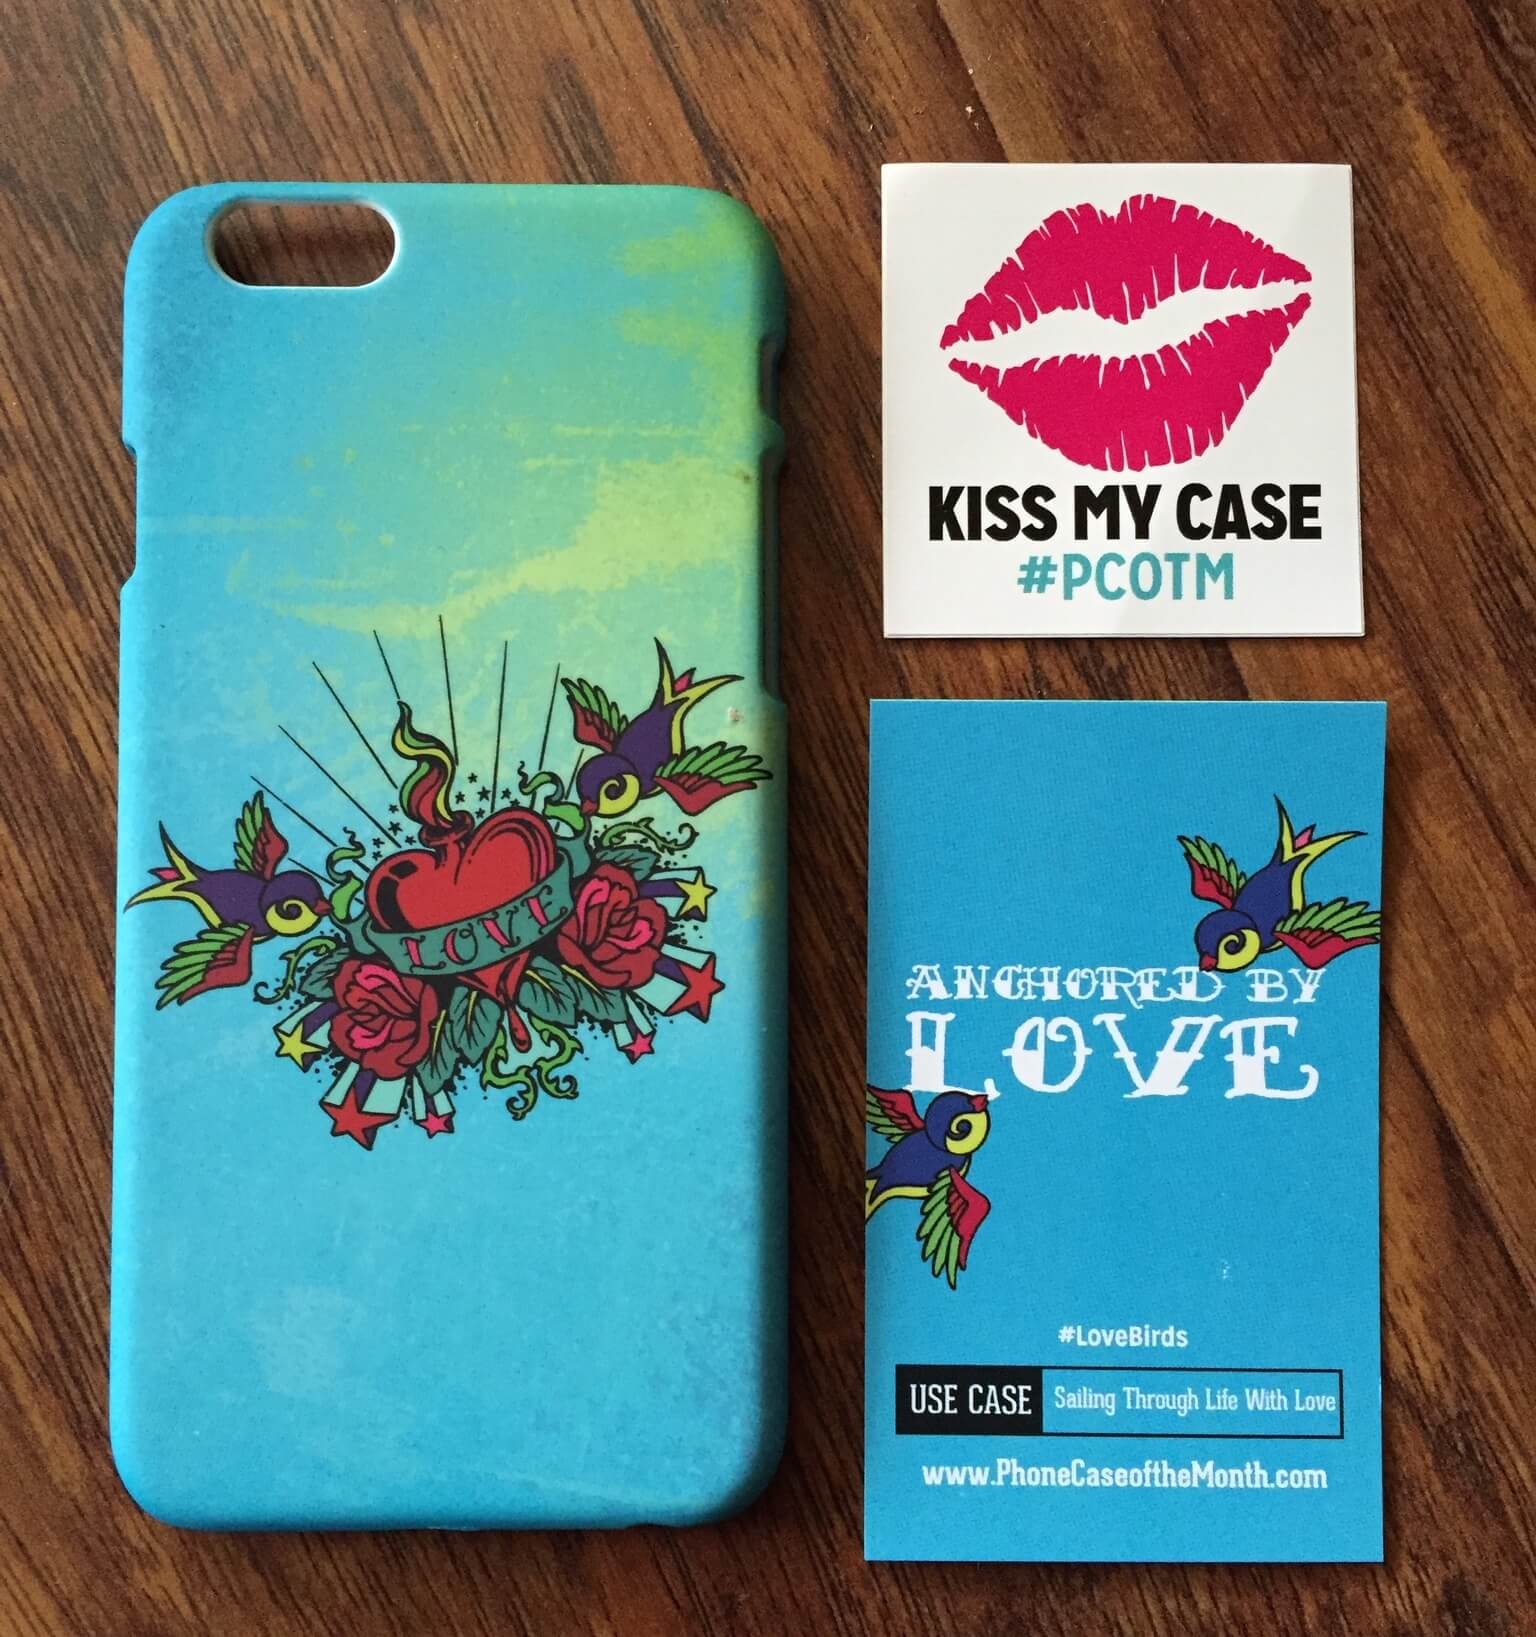 Phone Case of the Month Box Blog